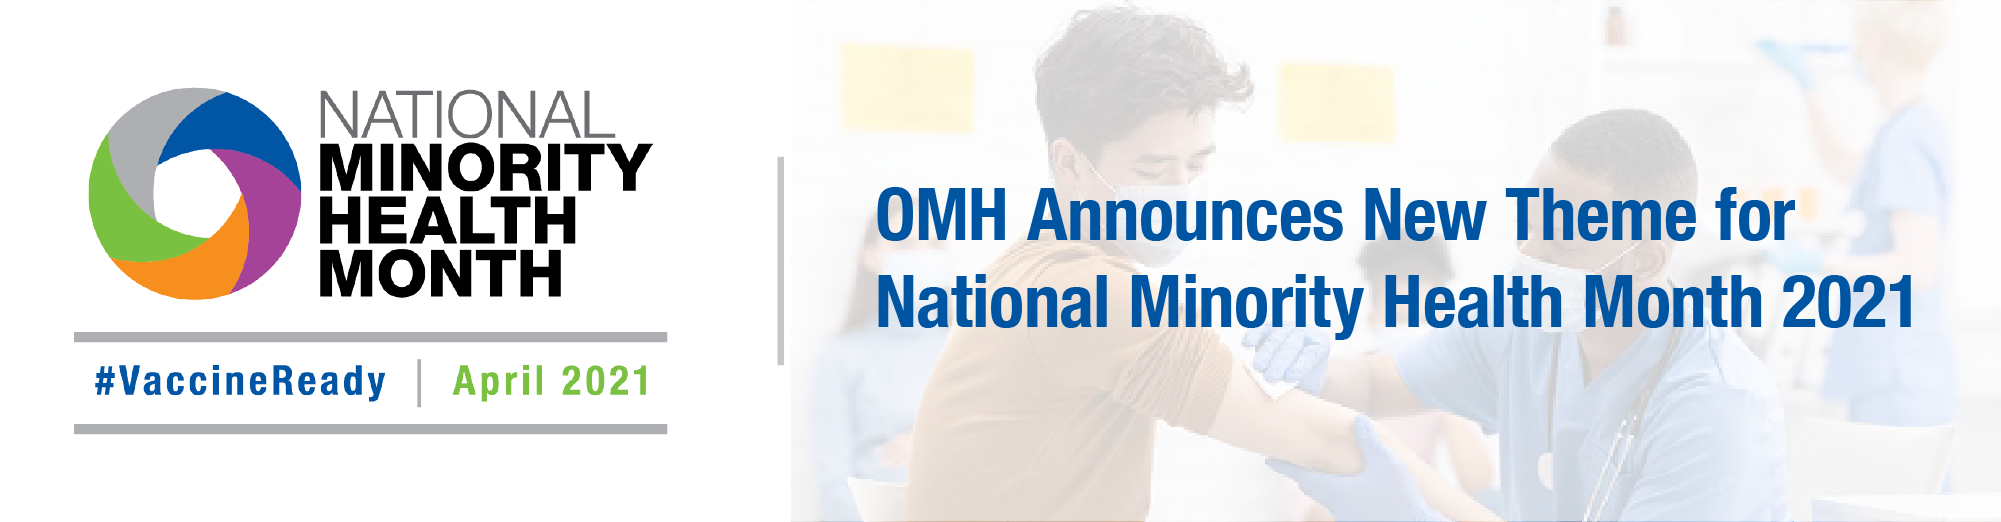 National Minority Health Month 2021 banner